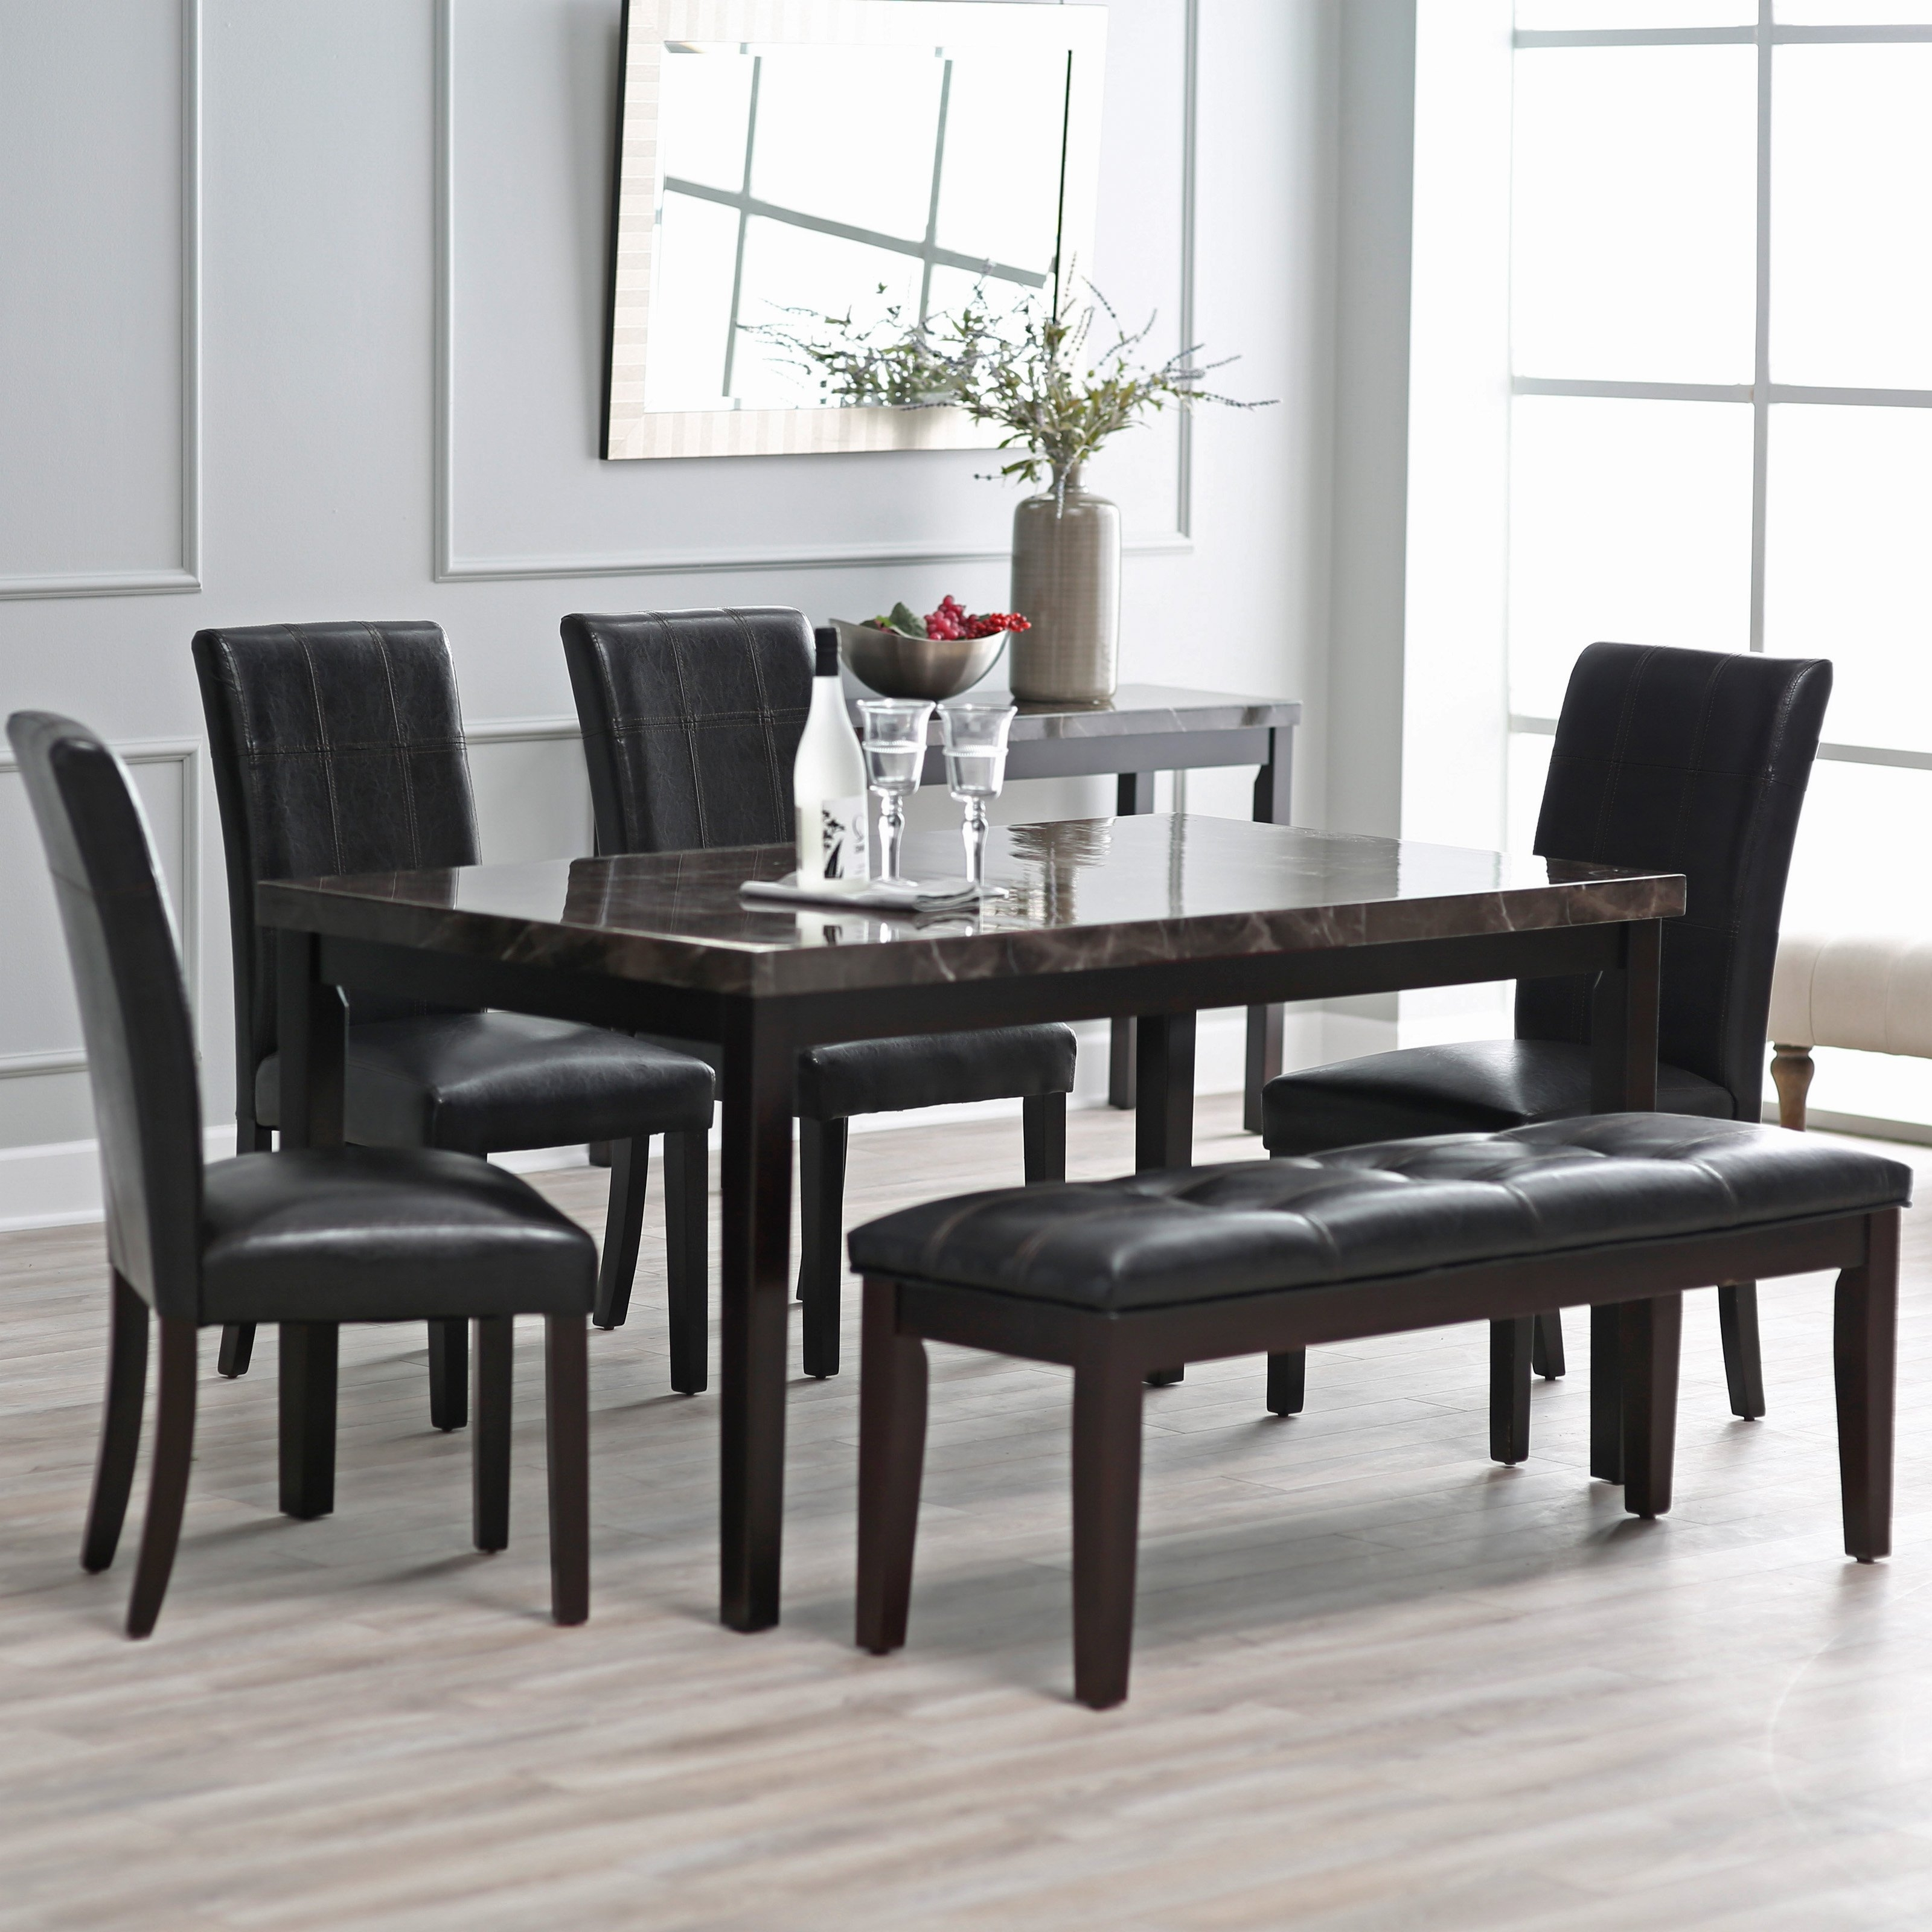 Finley Home Milano 6 Piece Dining Table Set (View 11 of 25)